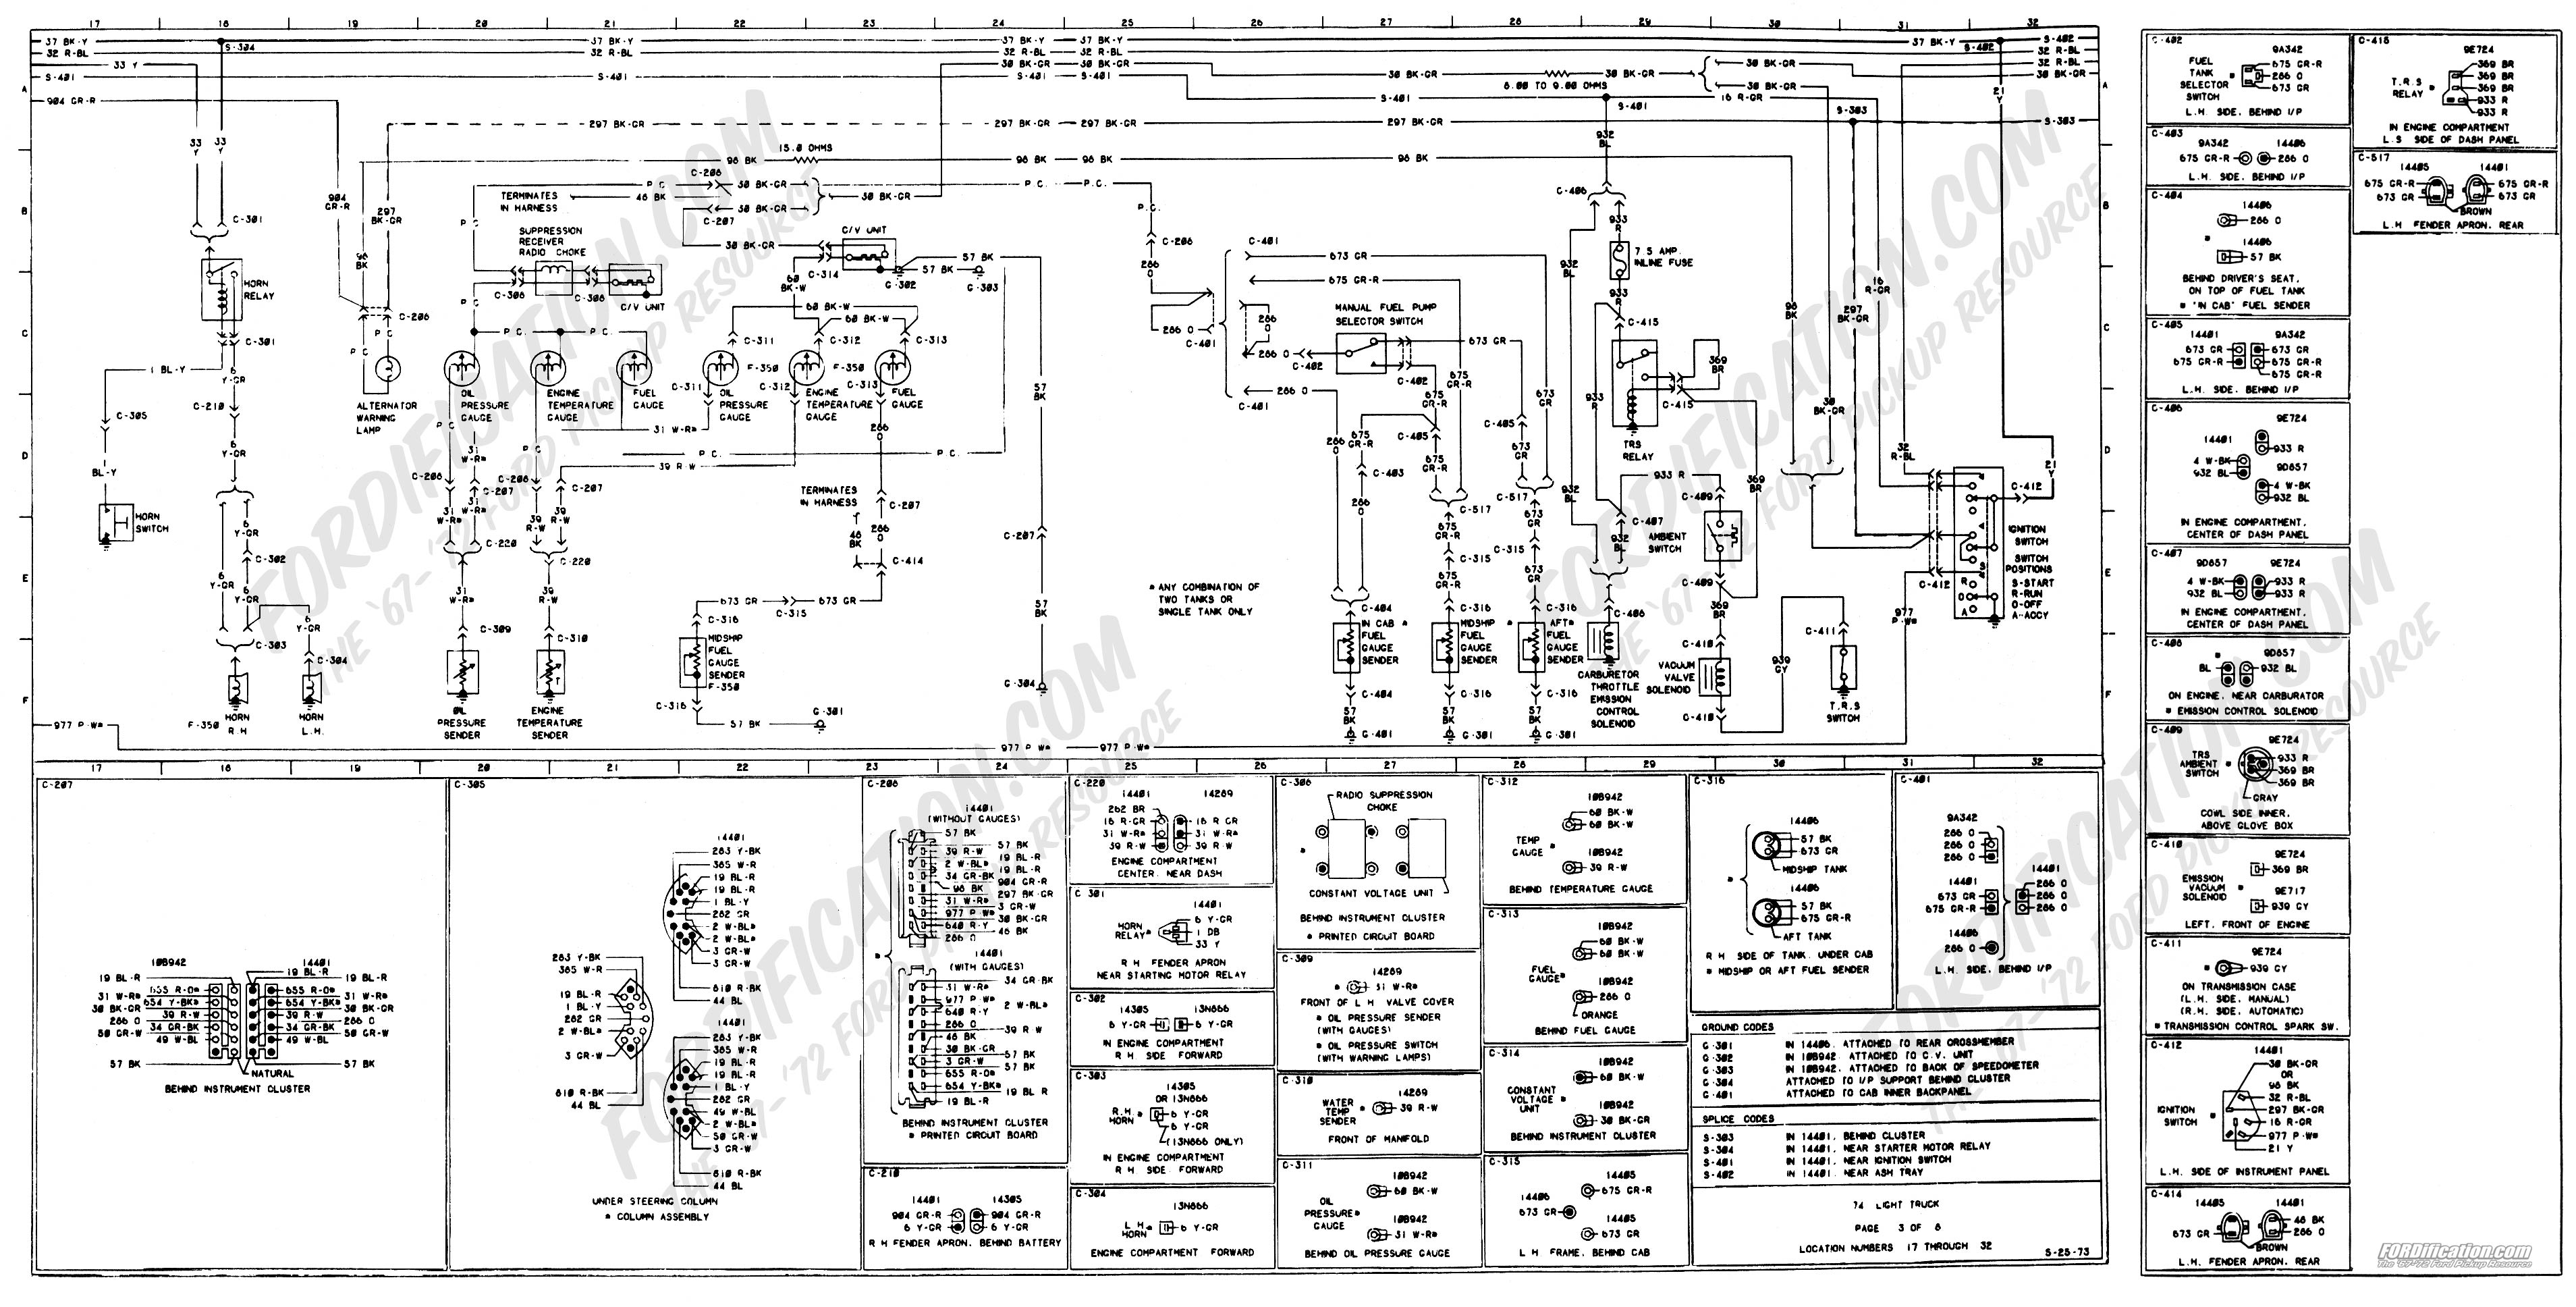 wiring_74master_3of8 1973 1979 ford truck wiring diagrams & schematics fordification net wiring diagram schematic at eliteediting.co